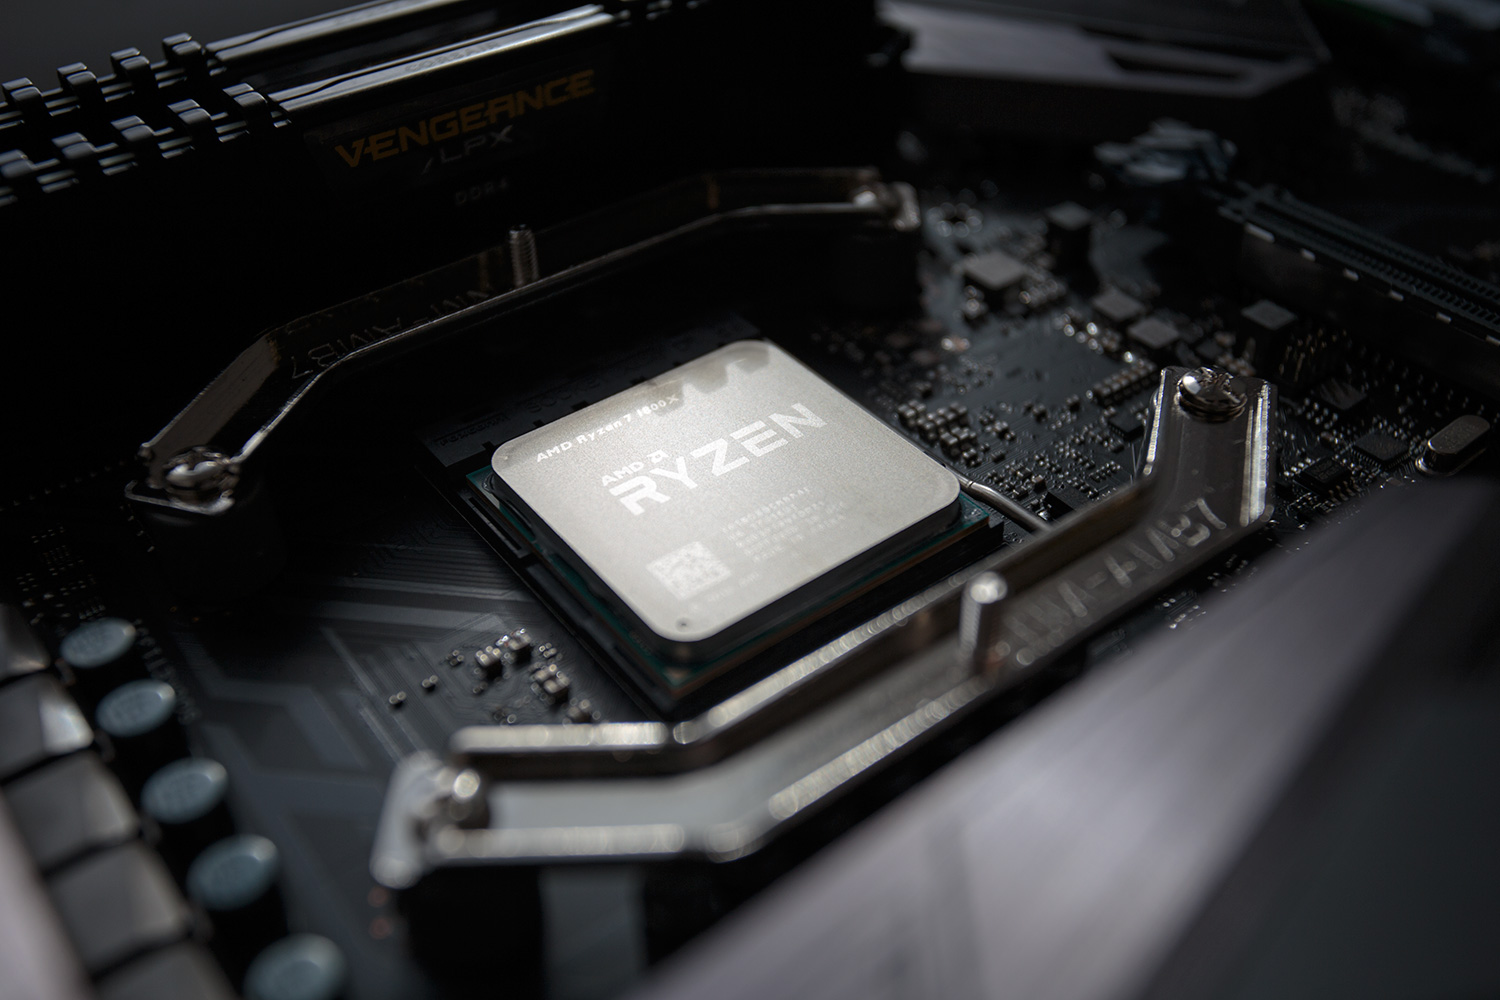 AMD Ryzen 7 1800X still behind Intel, but it's great for the